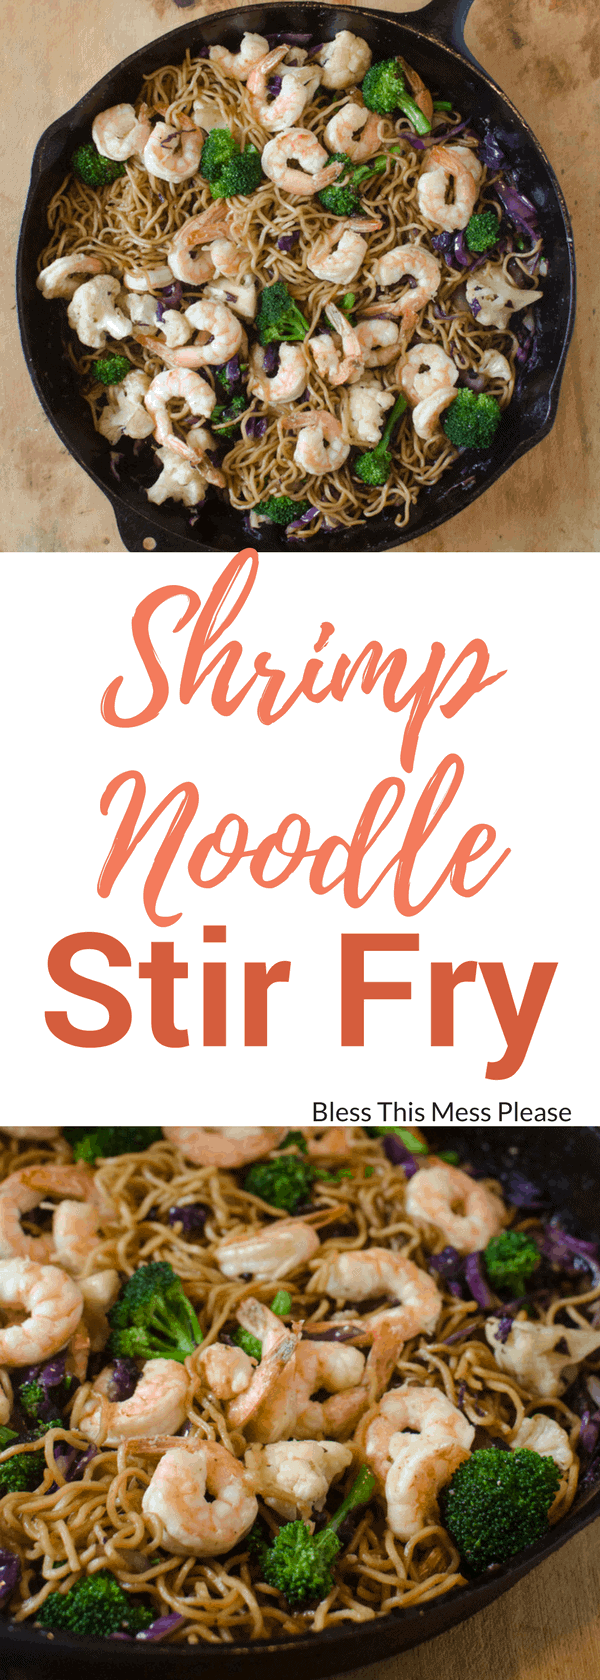 Shrimp Noodle Stir Fry